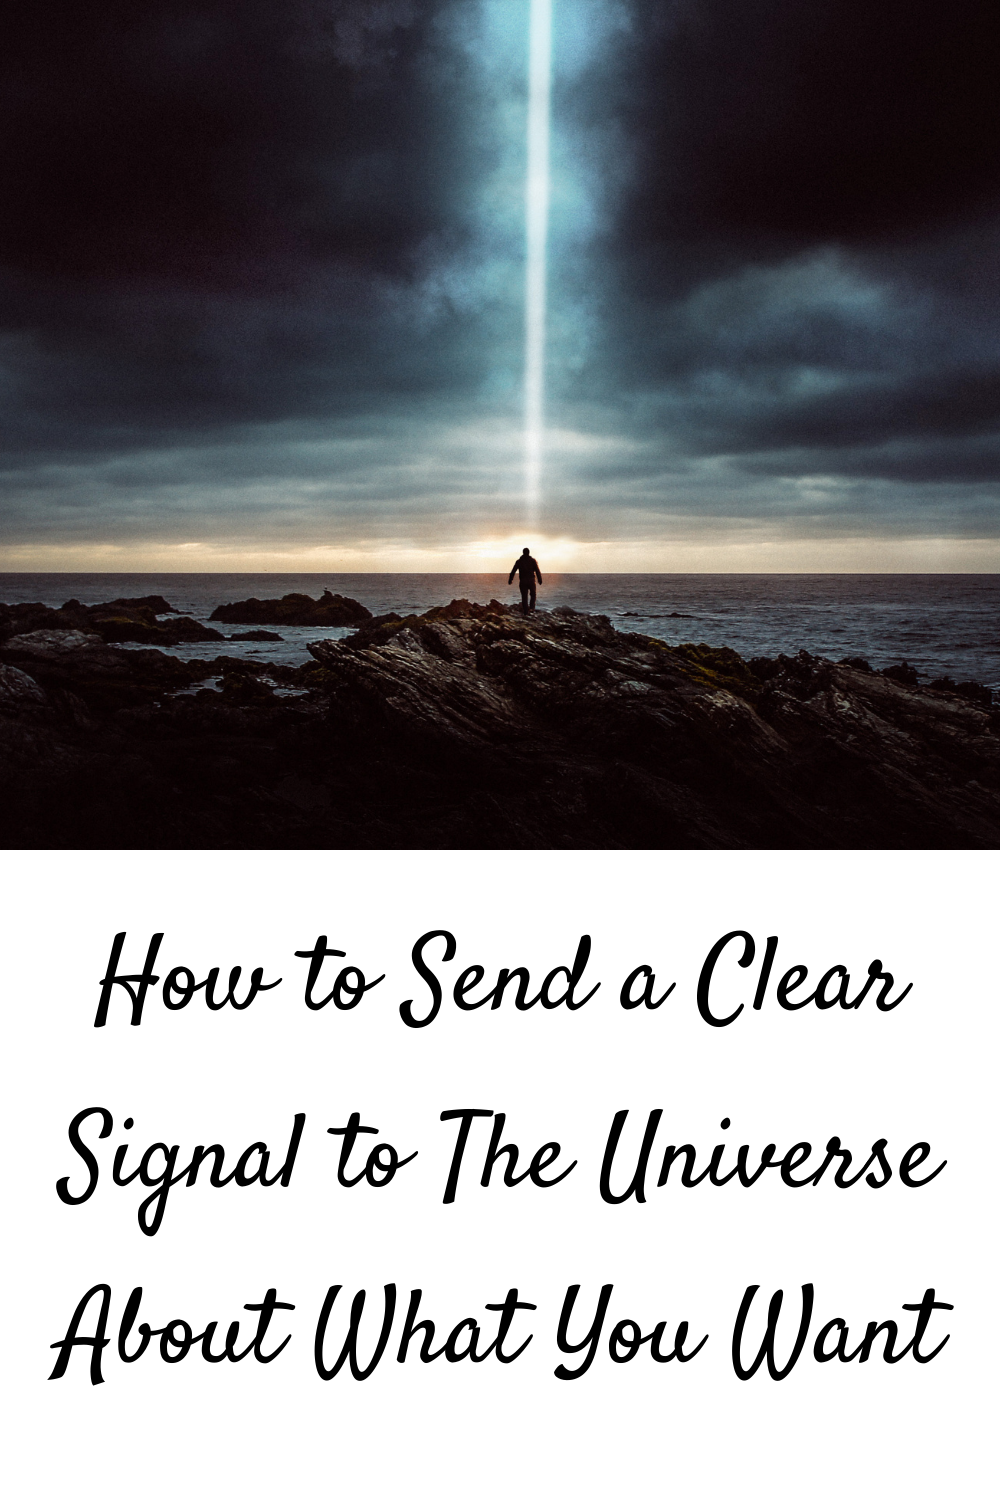 How to Send a Clear Signal to The Universe About What You Want